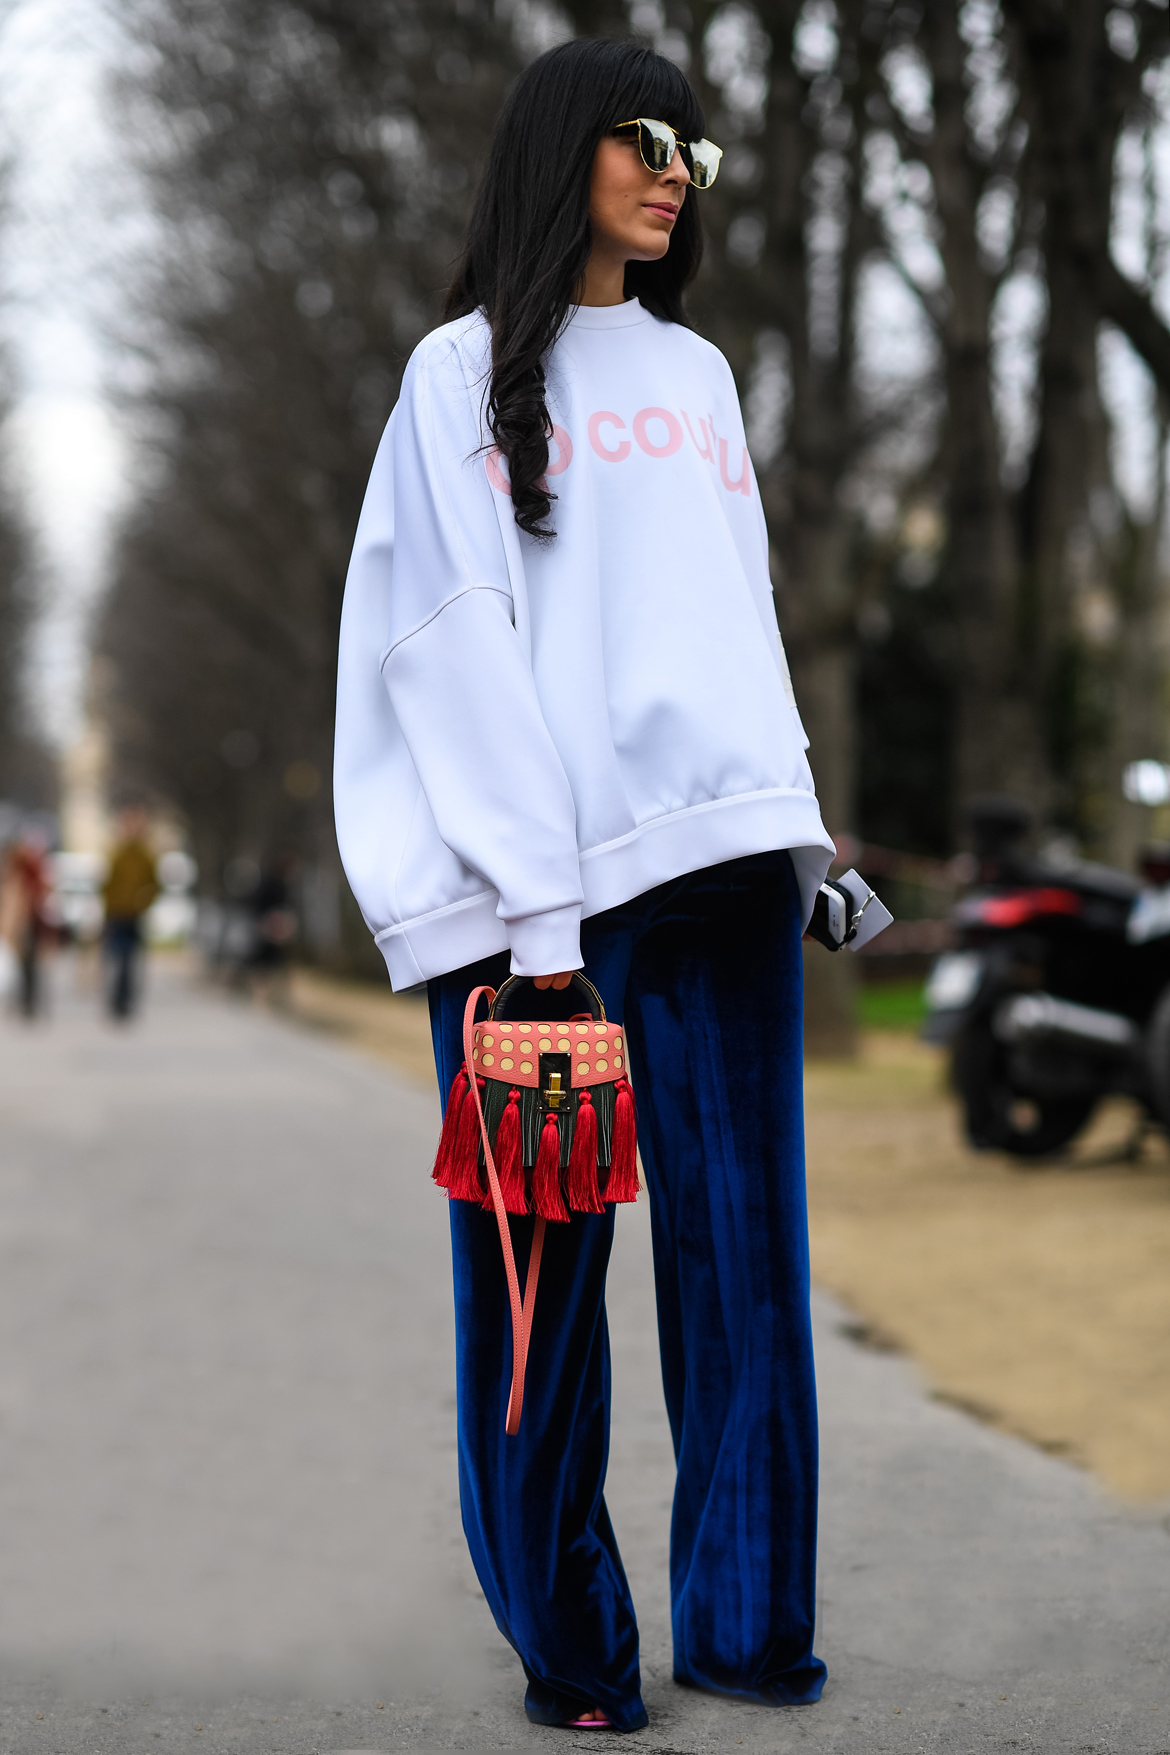 Felpa oversize e stile sportivo: Tendenza moda 2017 - Laura Comolli Streetstyle Paris Fashion Week wearing Scrambled_ego sweatshirt, Compagnia Italiana velvet trousers and The Volon bag